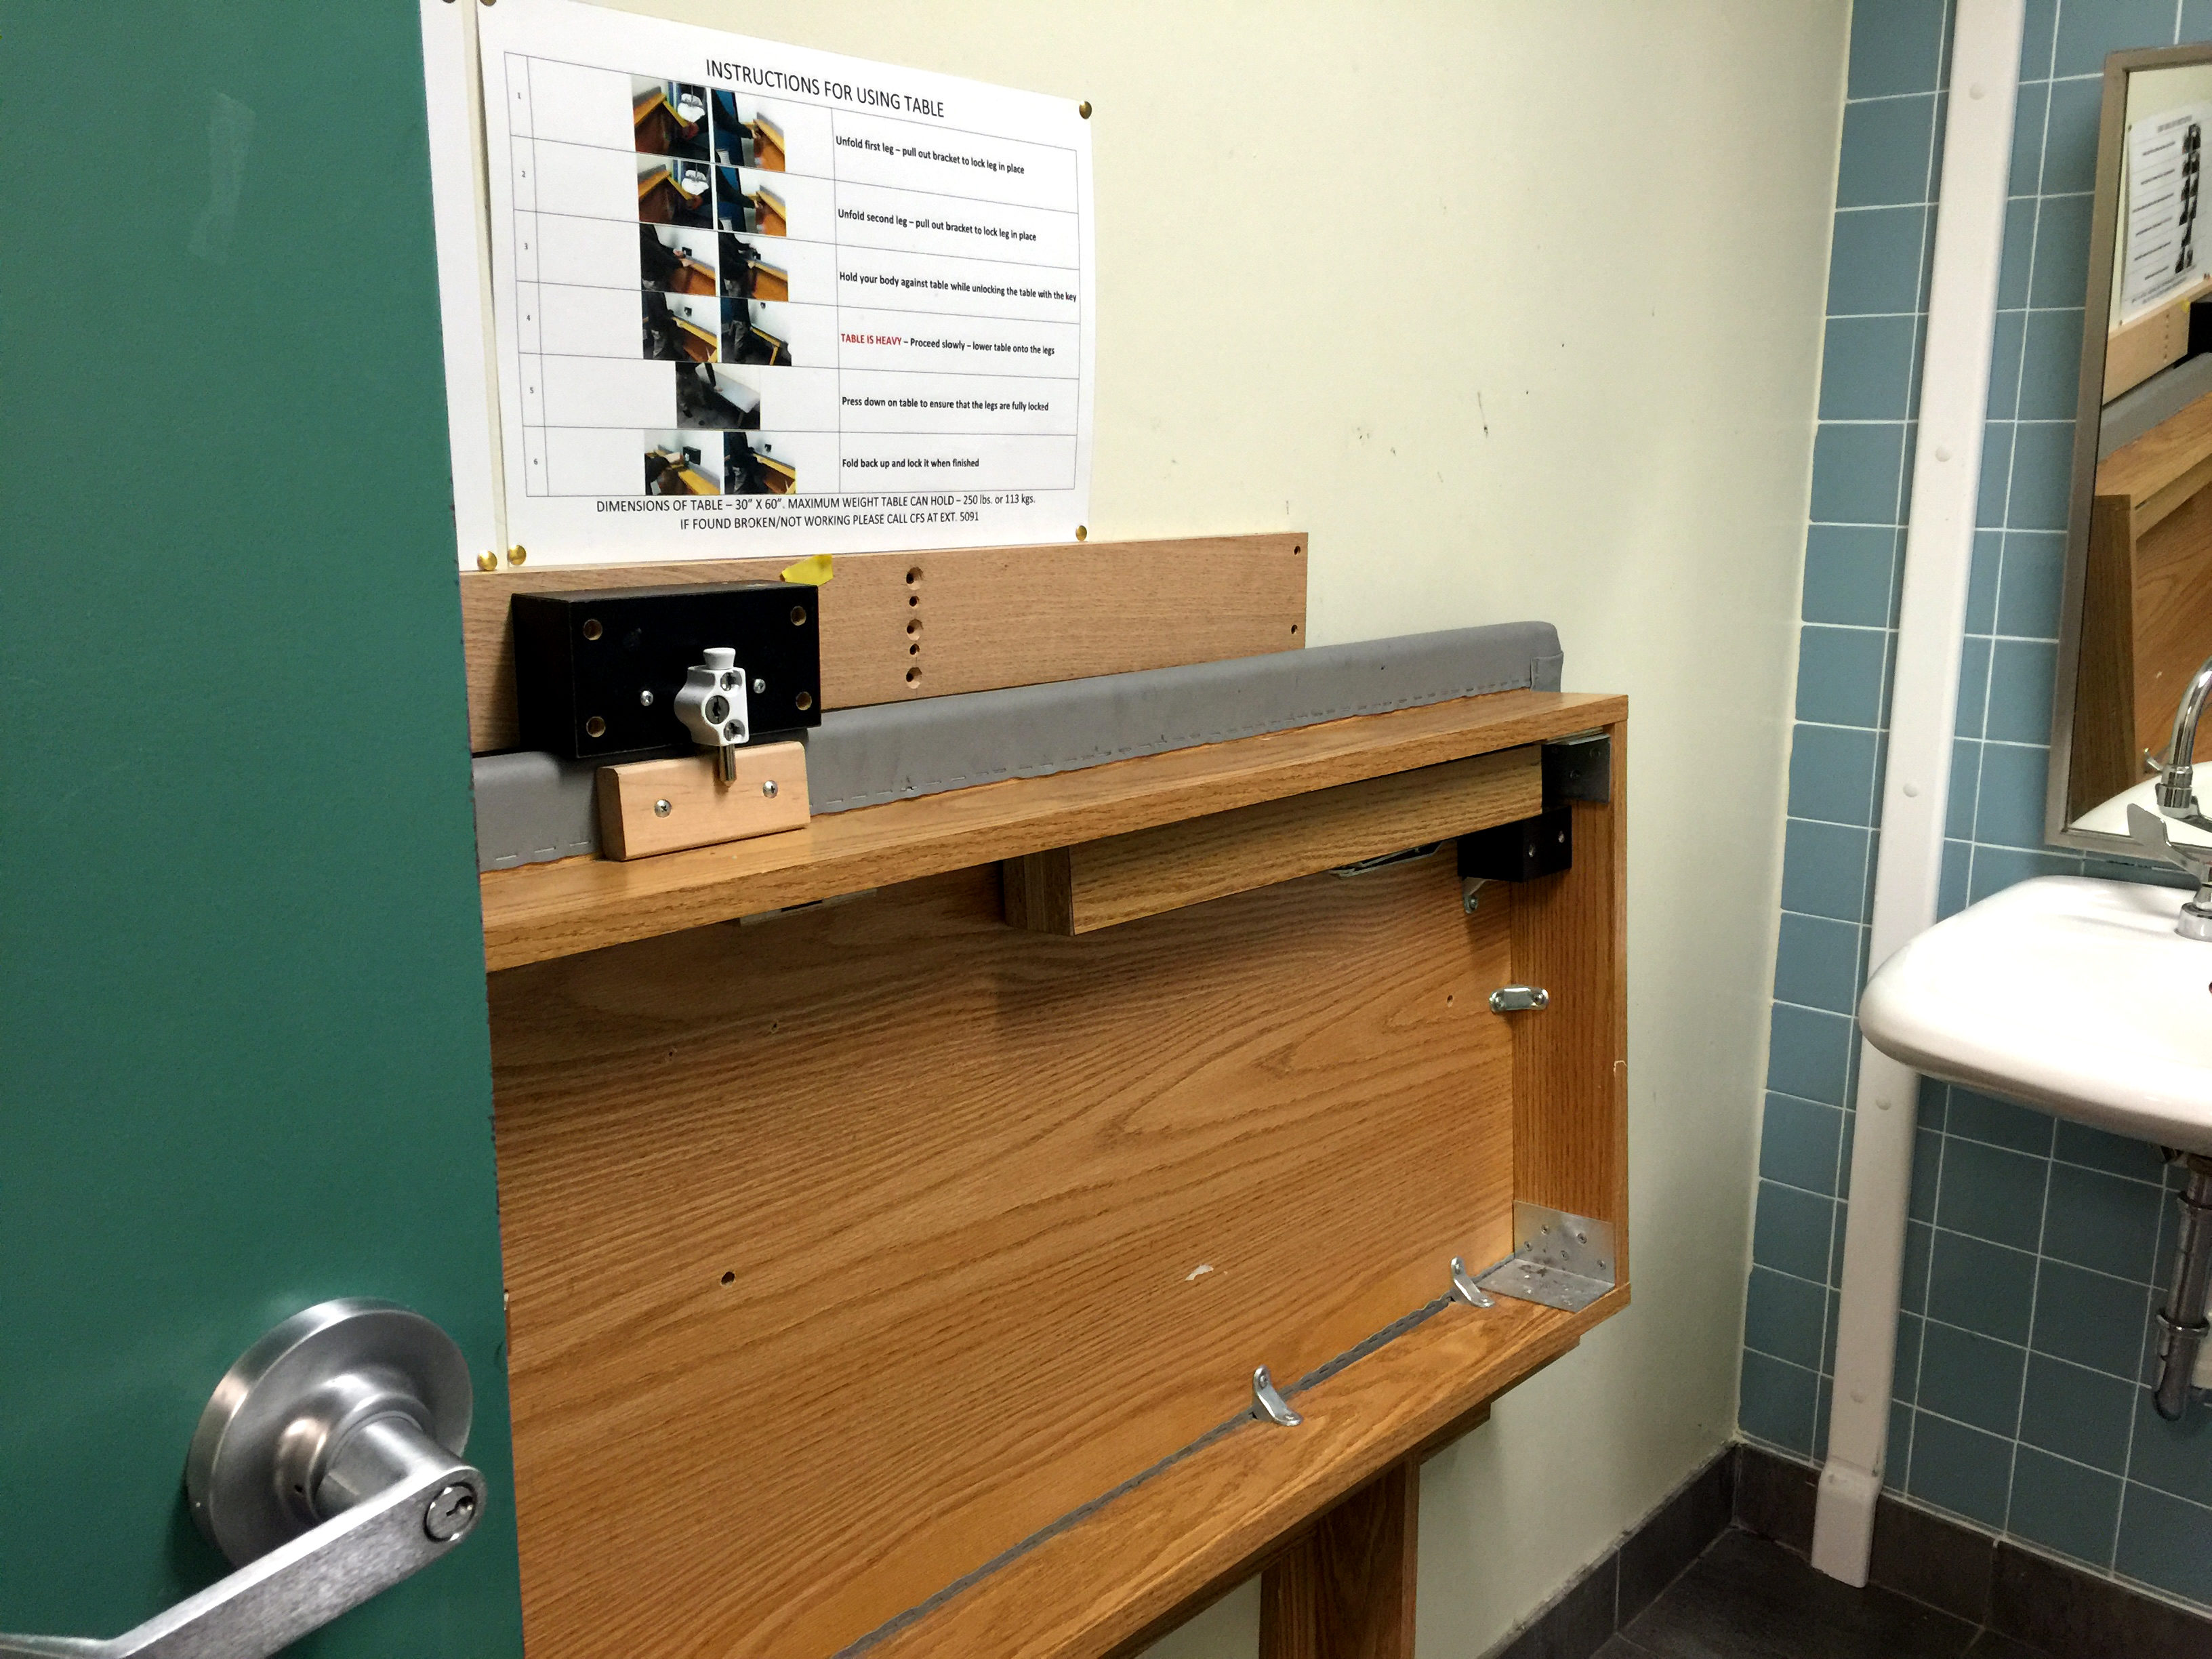 The cot propped up in the accessible washroom where the man was found Nov. 4, 2015. (Latifa Abdin/Ryersonian Staff)